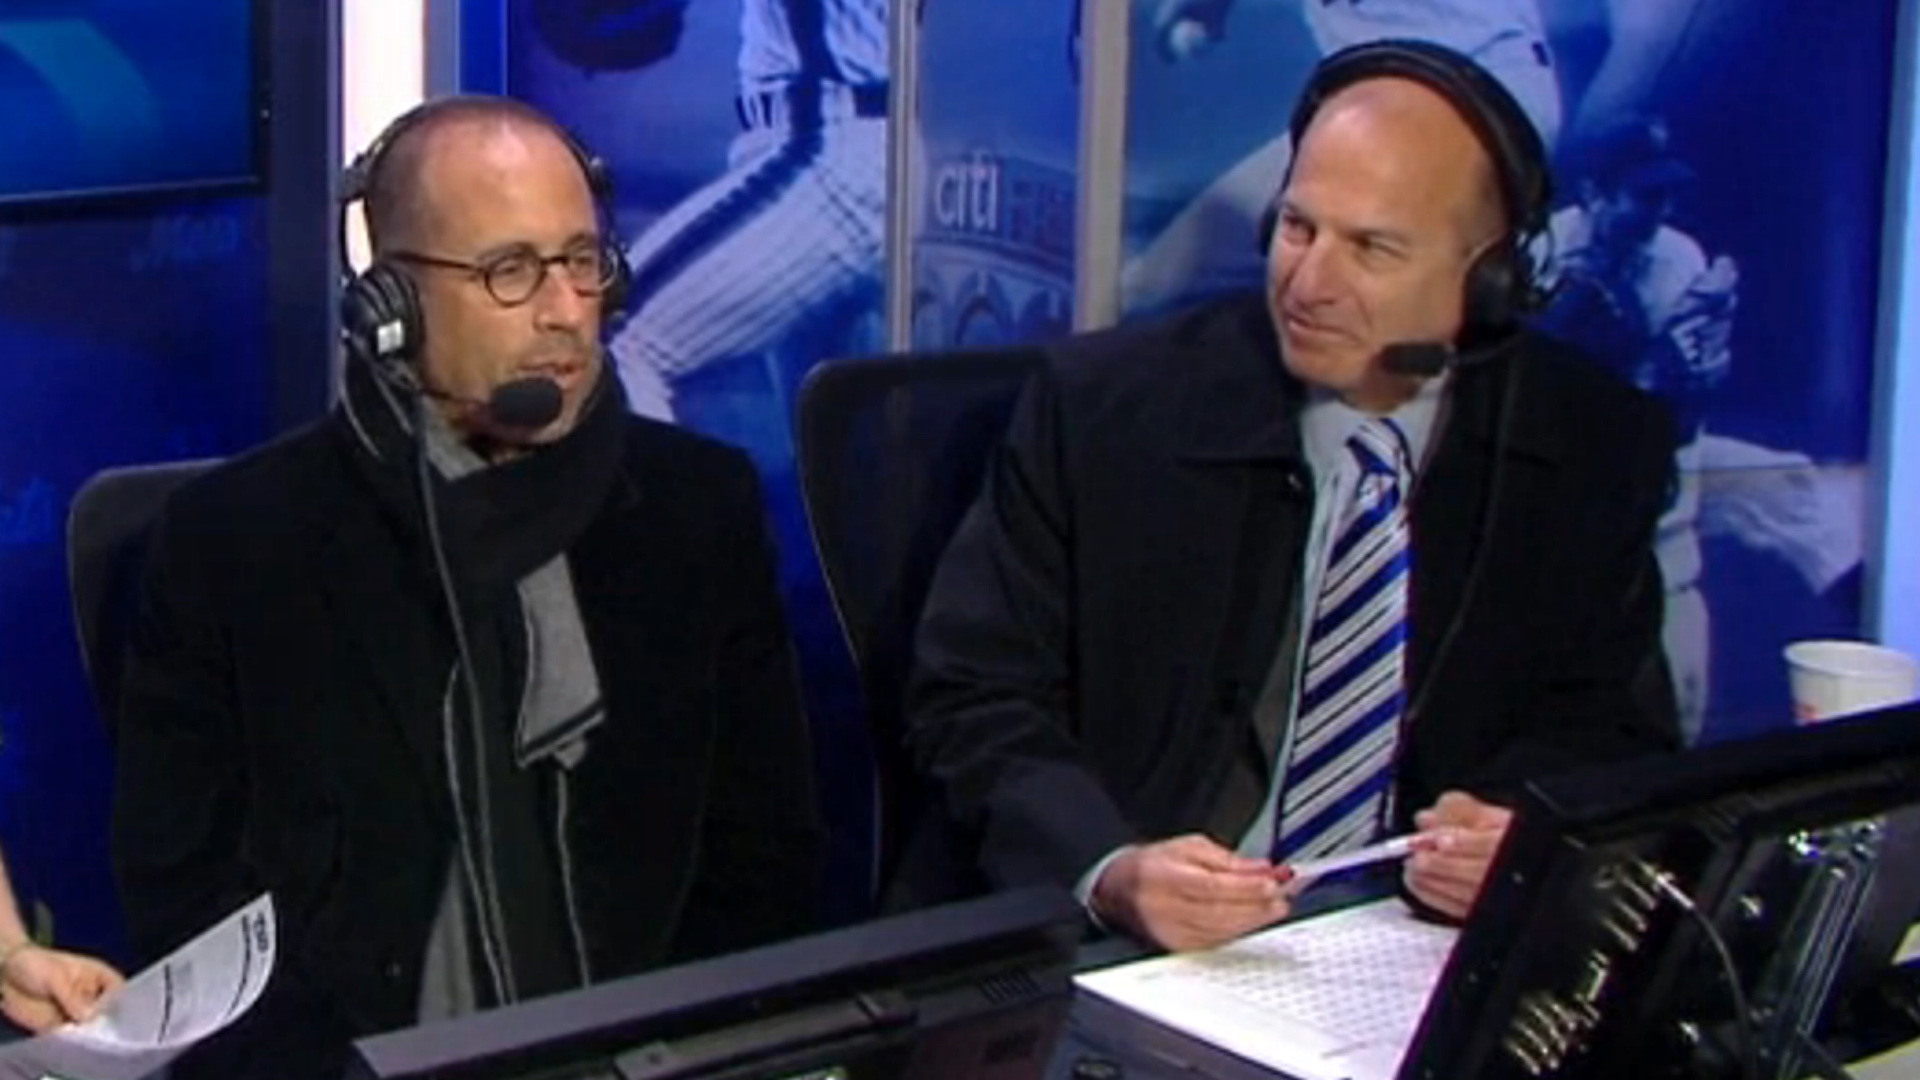 Jerry Seinfeld joins Mets broadcast